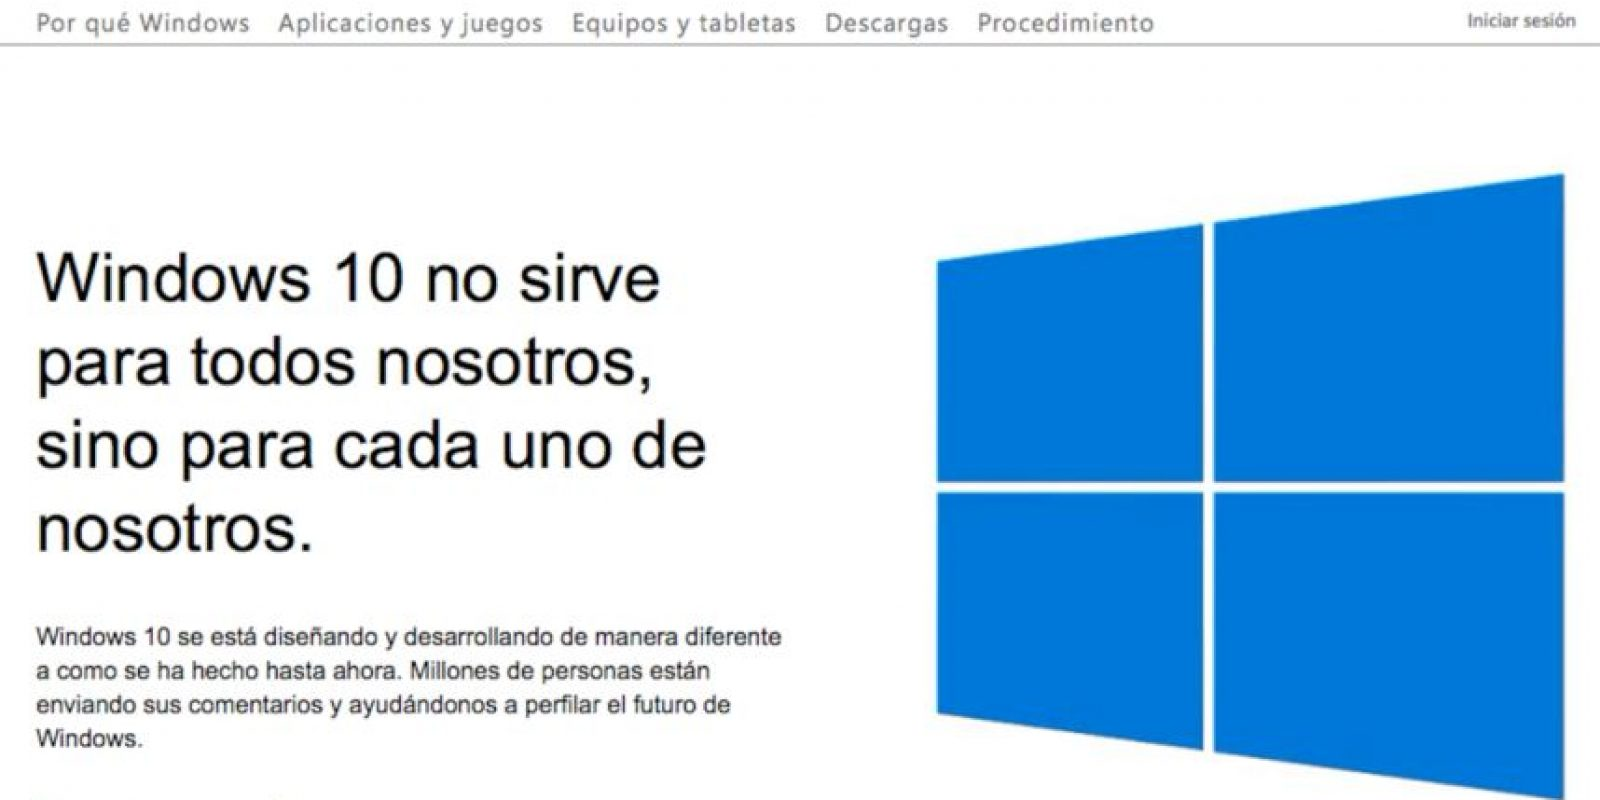 Las actualizaciones de Windows 10 están disponibles en la pagina oficial de la empresa. Foto: Vía Página oficial de Microsoft http://windows.microsoft.com/es-mx/windows-10/about